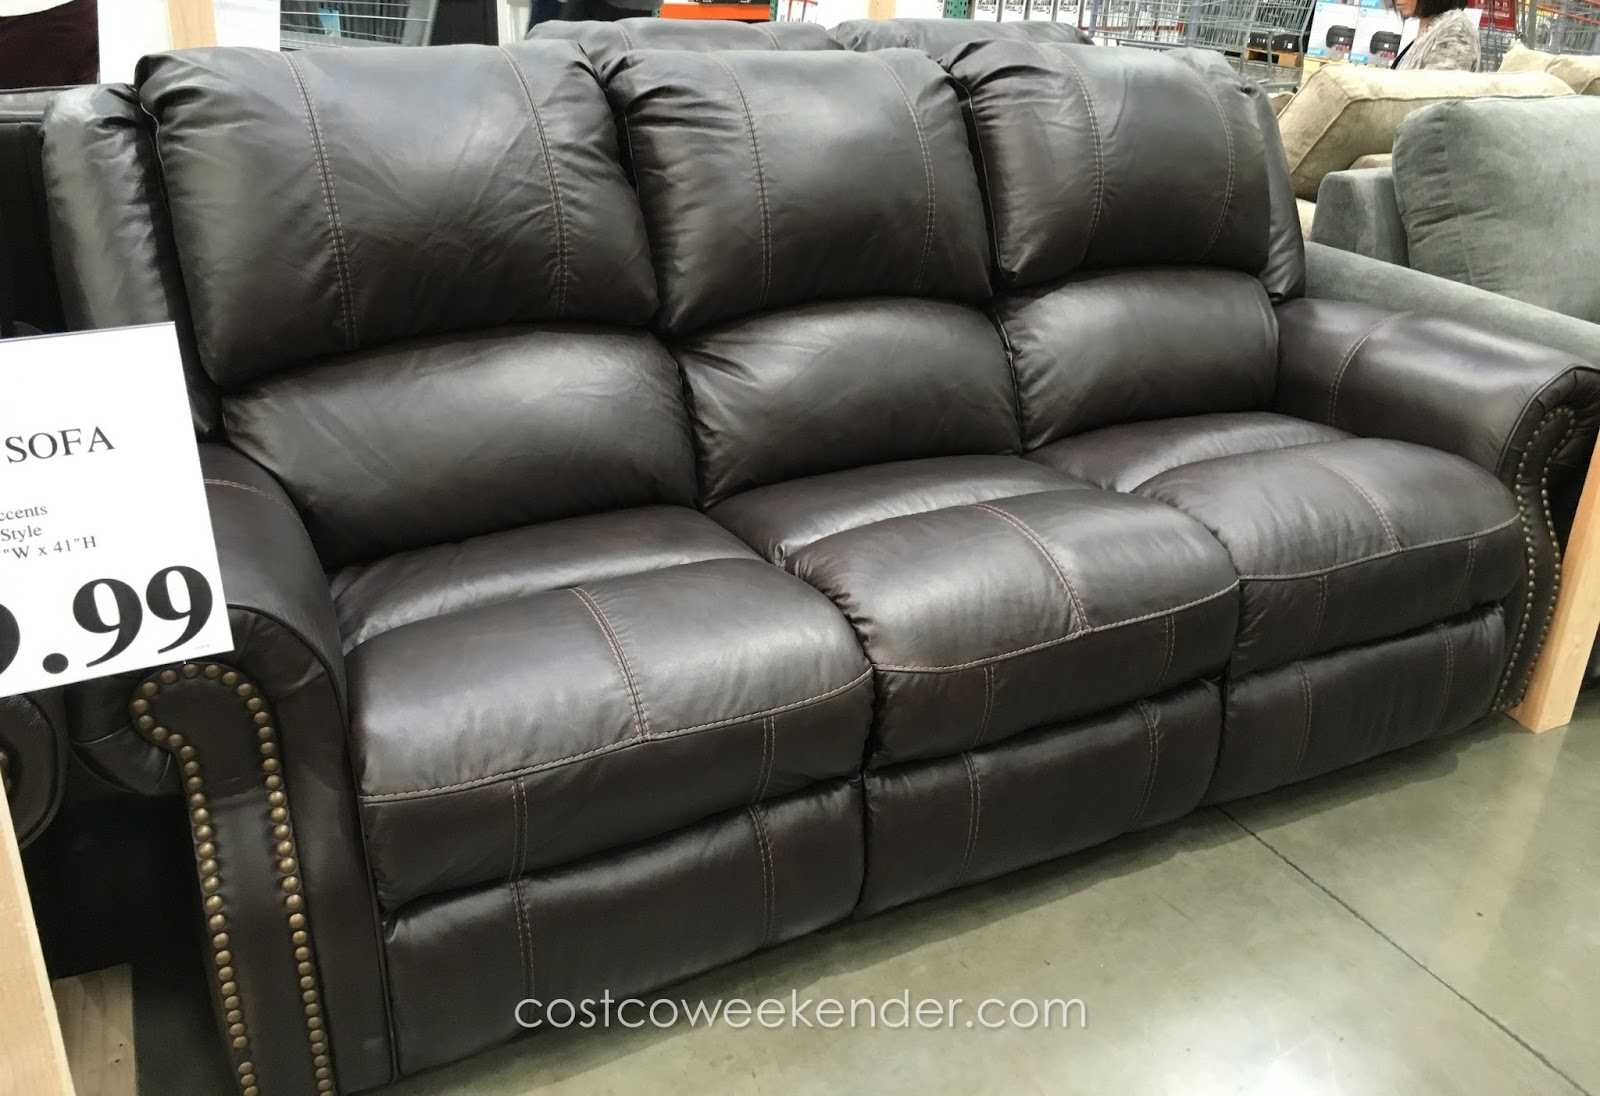 Berkline Leather Reclining Sofa Costco Weekender